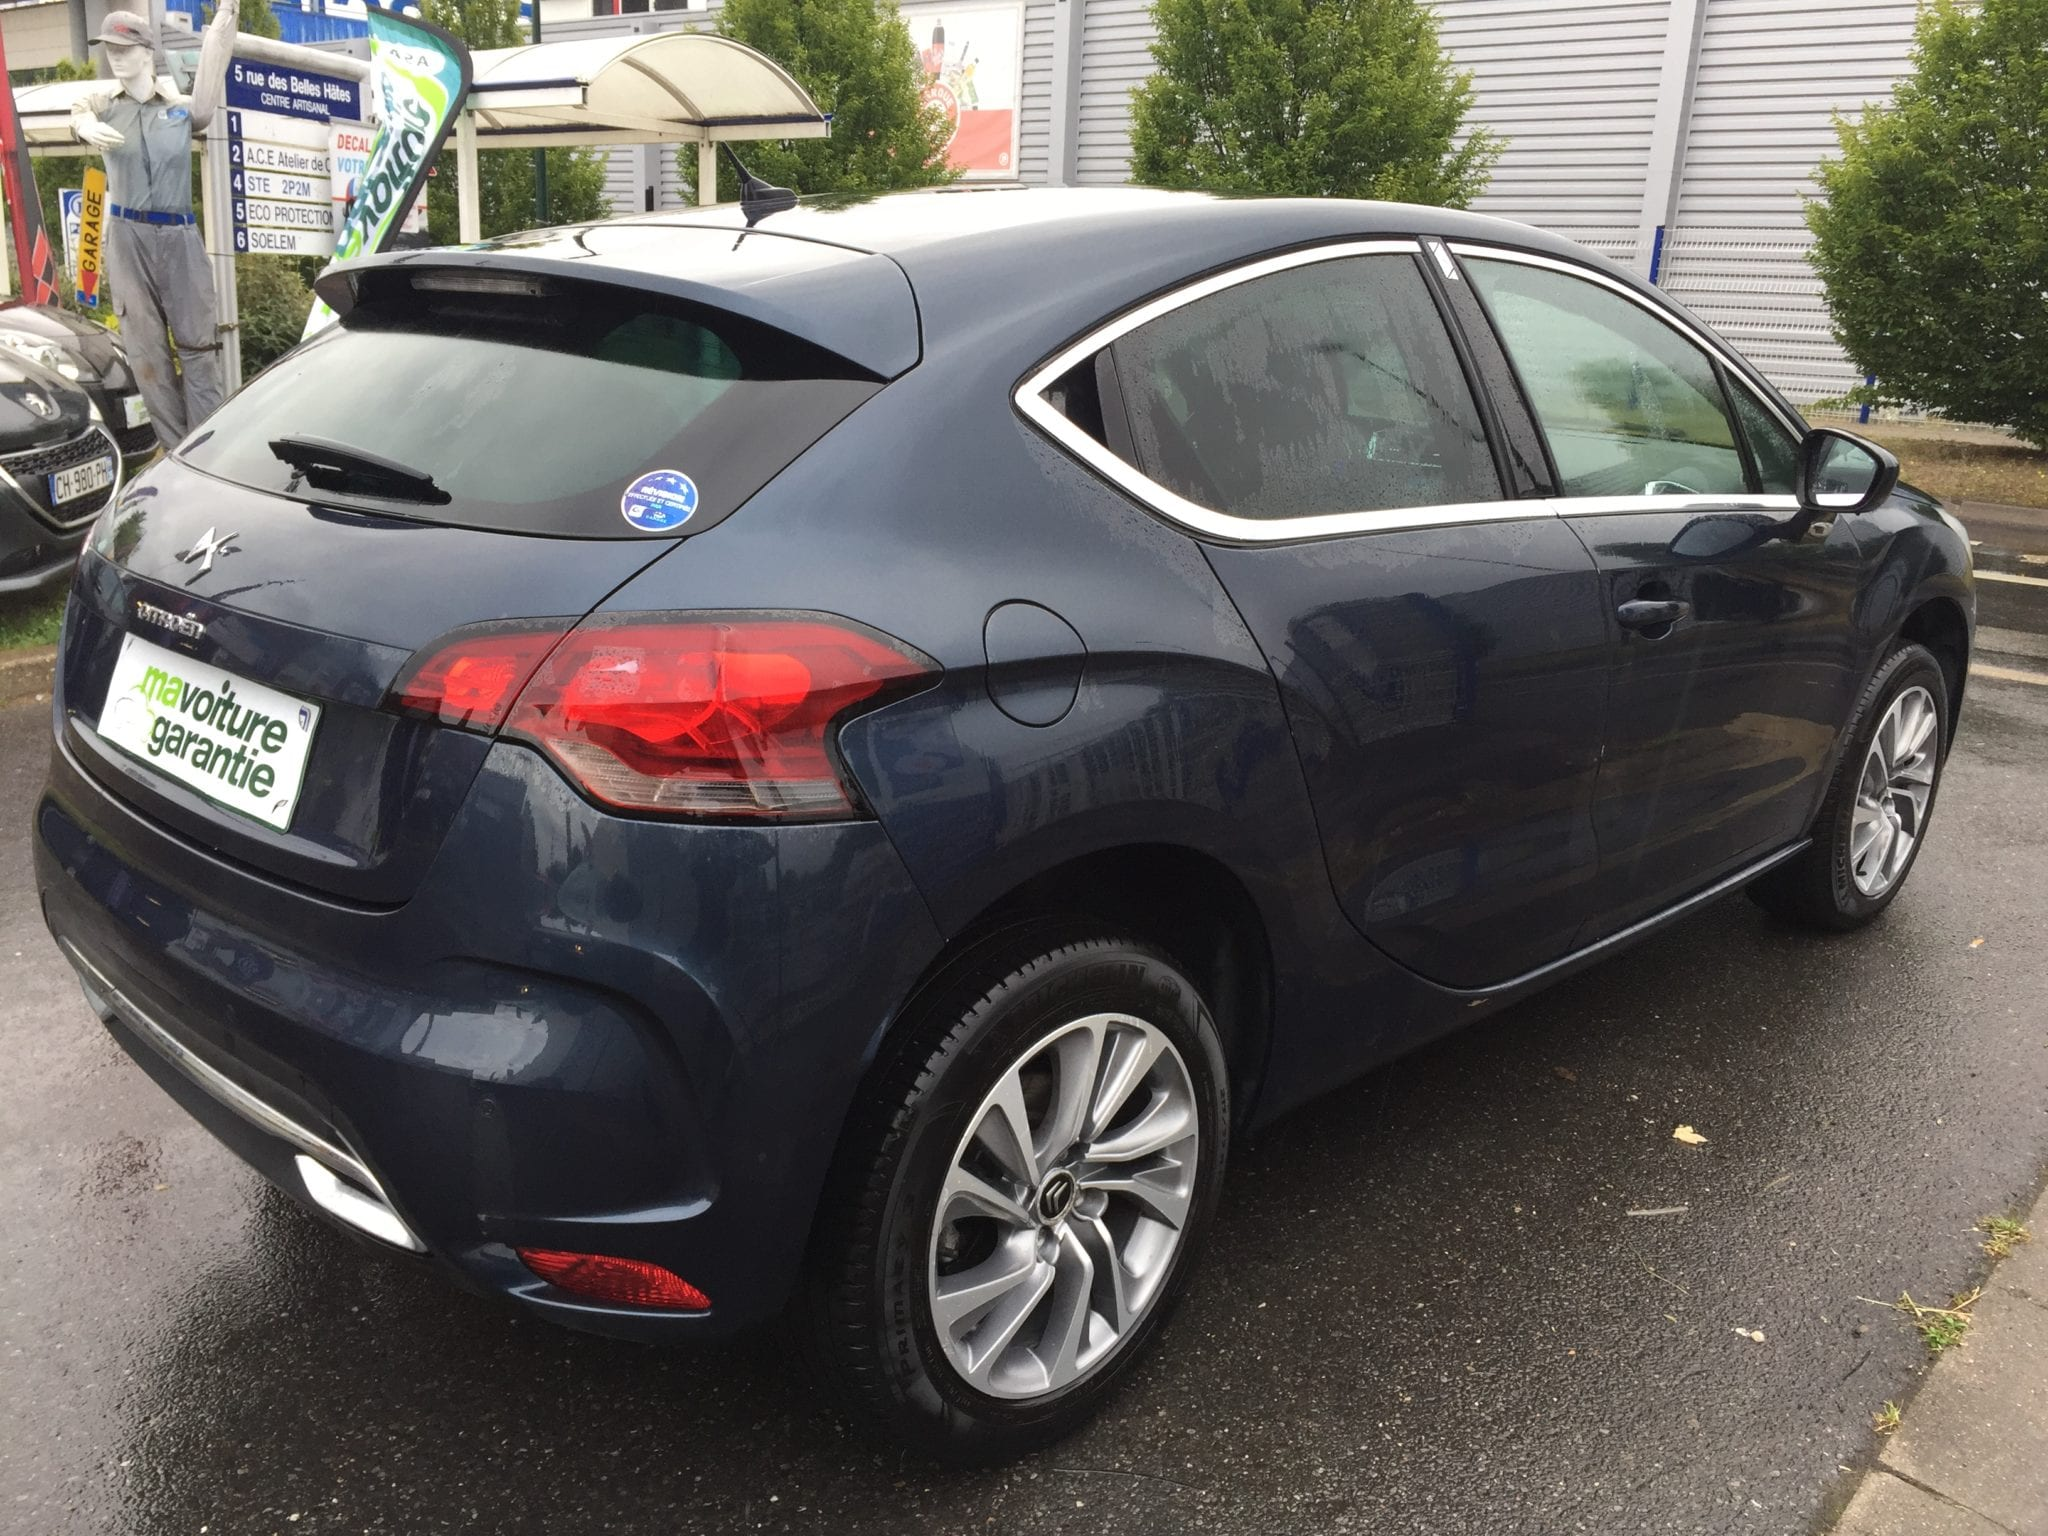 Citroen DS4 (EXECUTIVE - Image 3